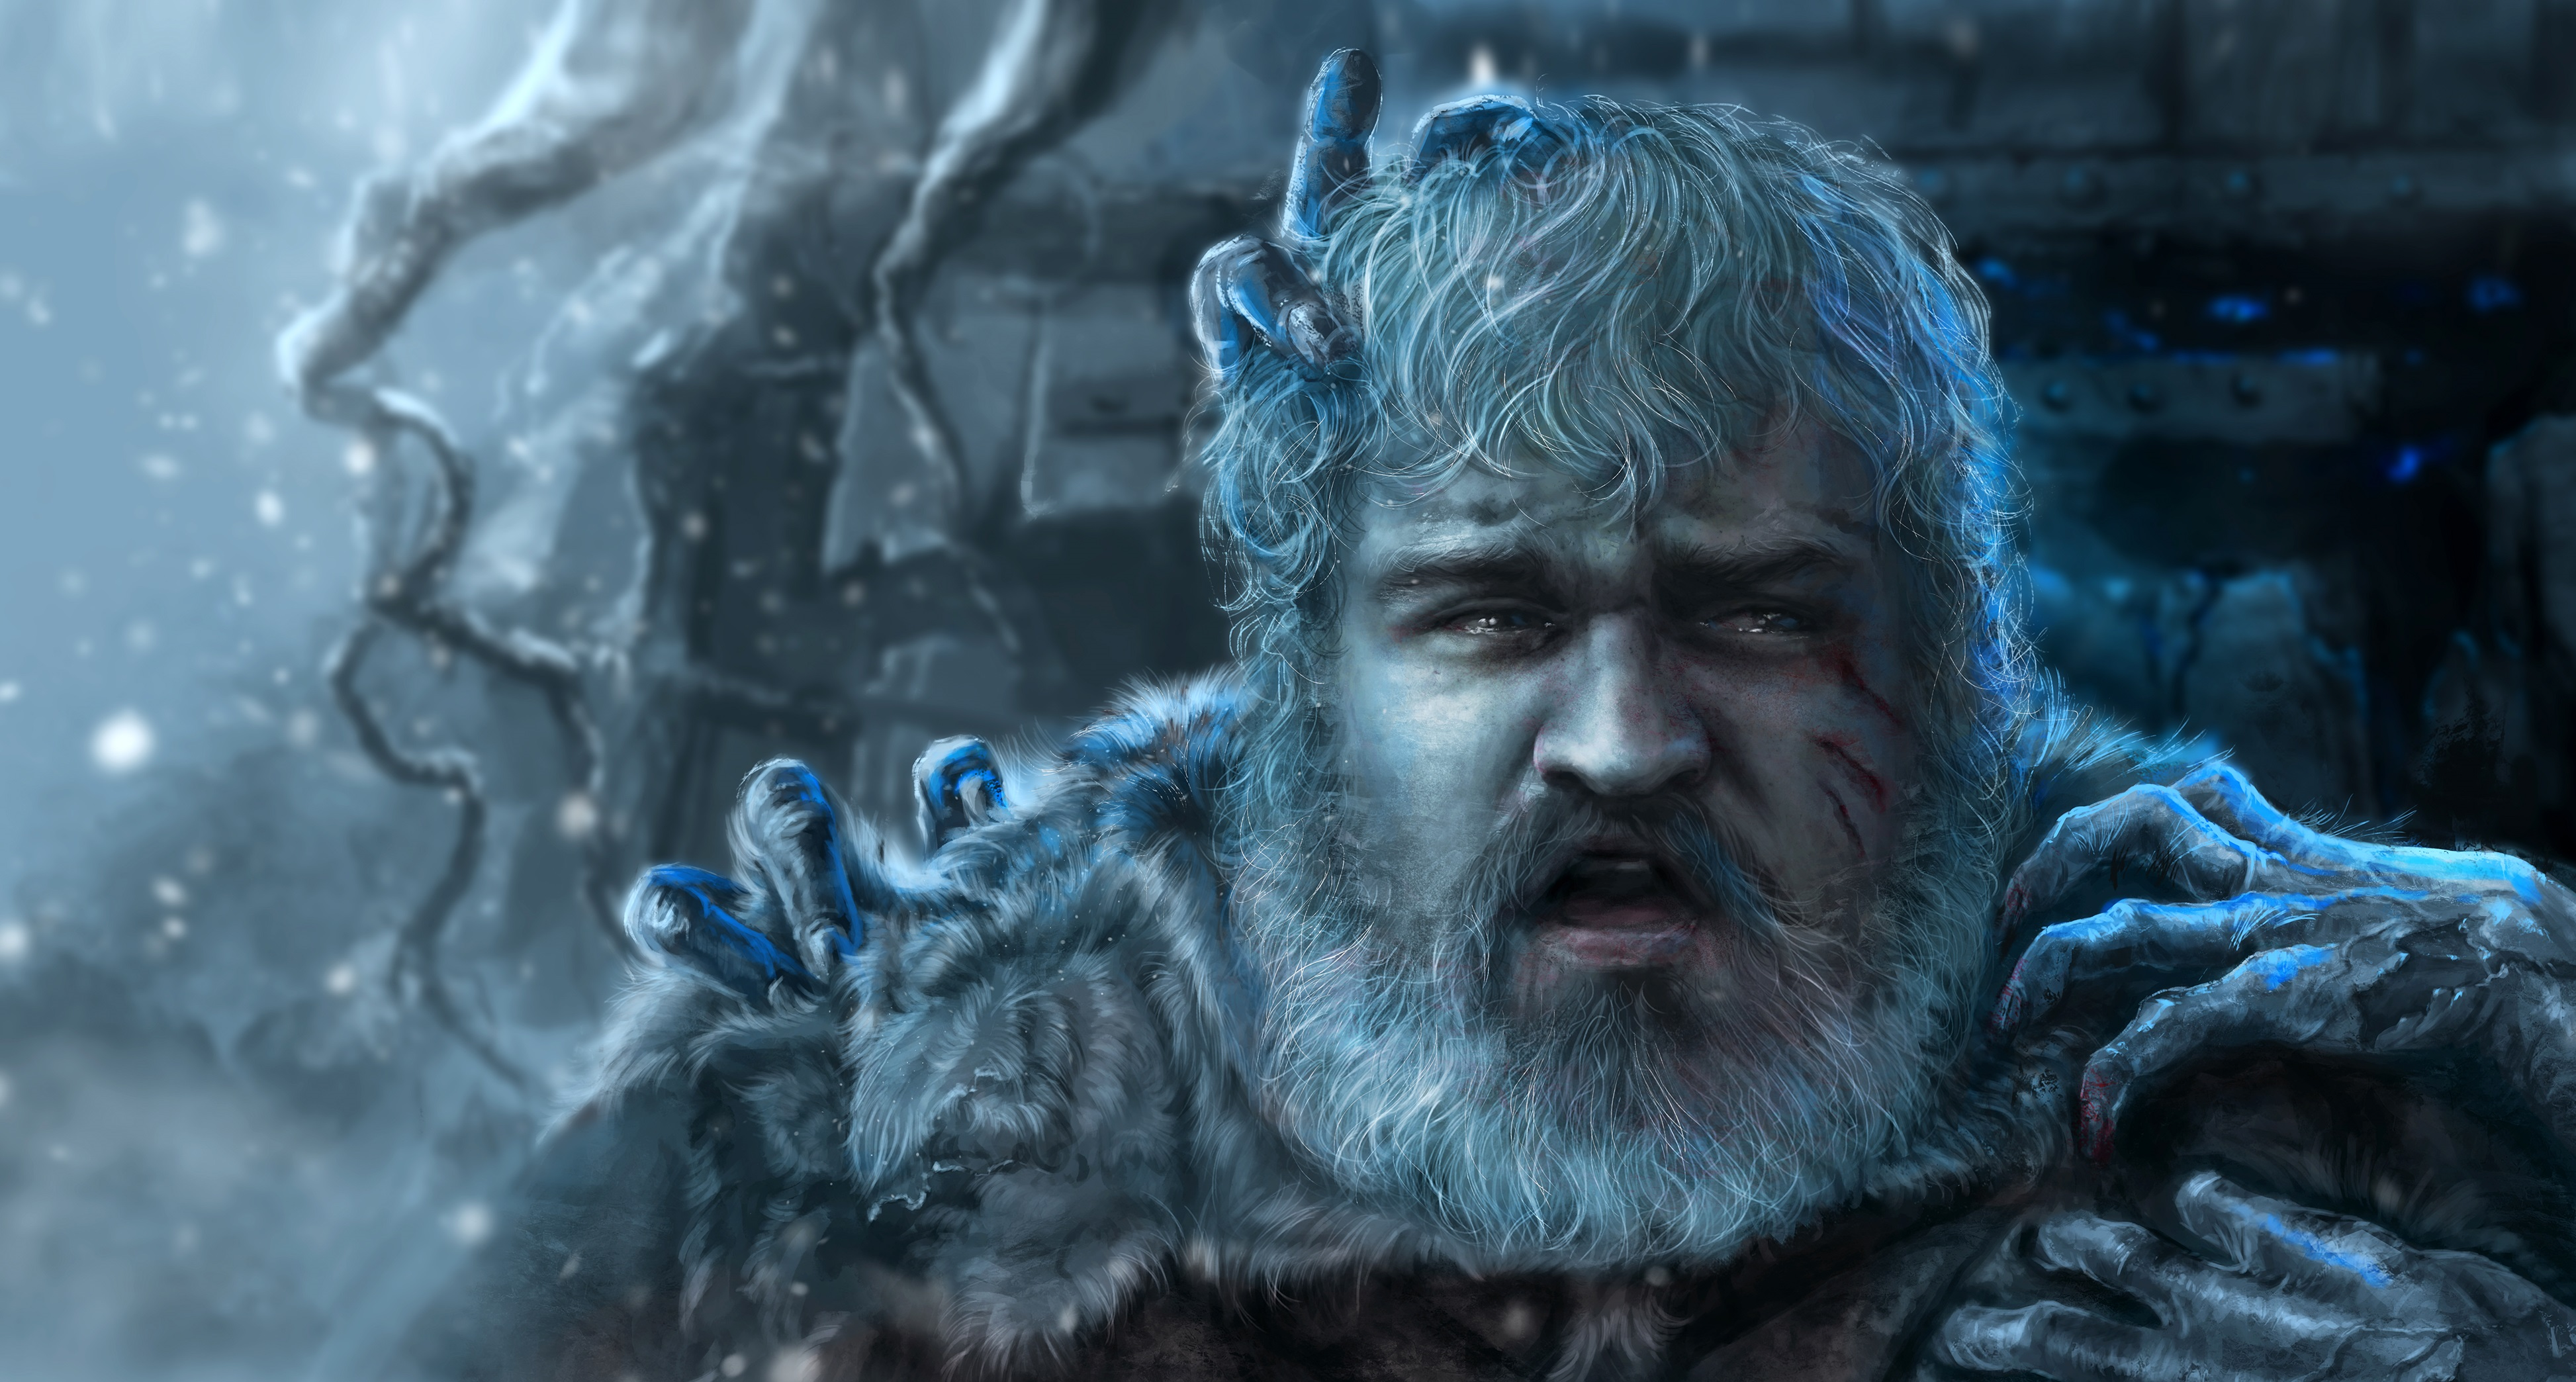 2048 ultra funny animals - Hodor Game Of Thrones Art Tv Shows Hd 4k Wallpapers